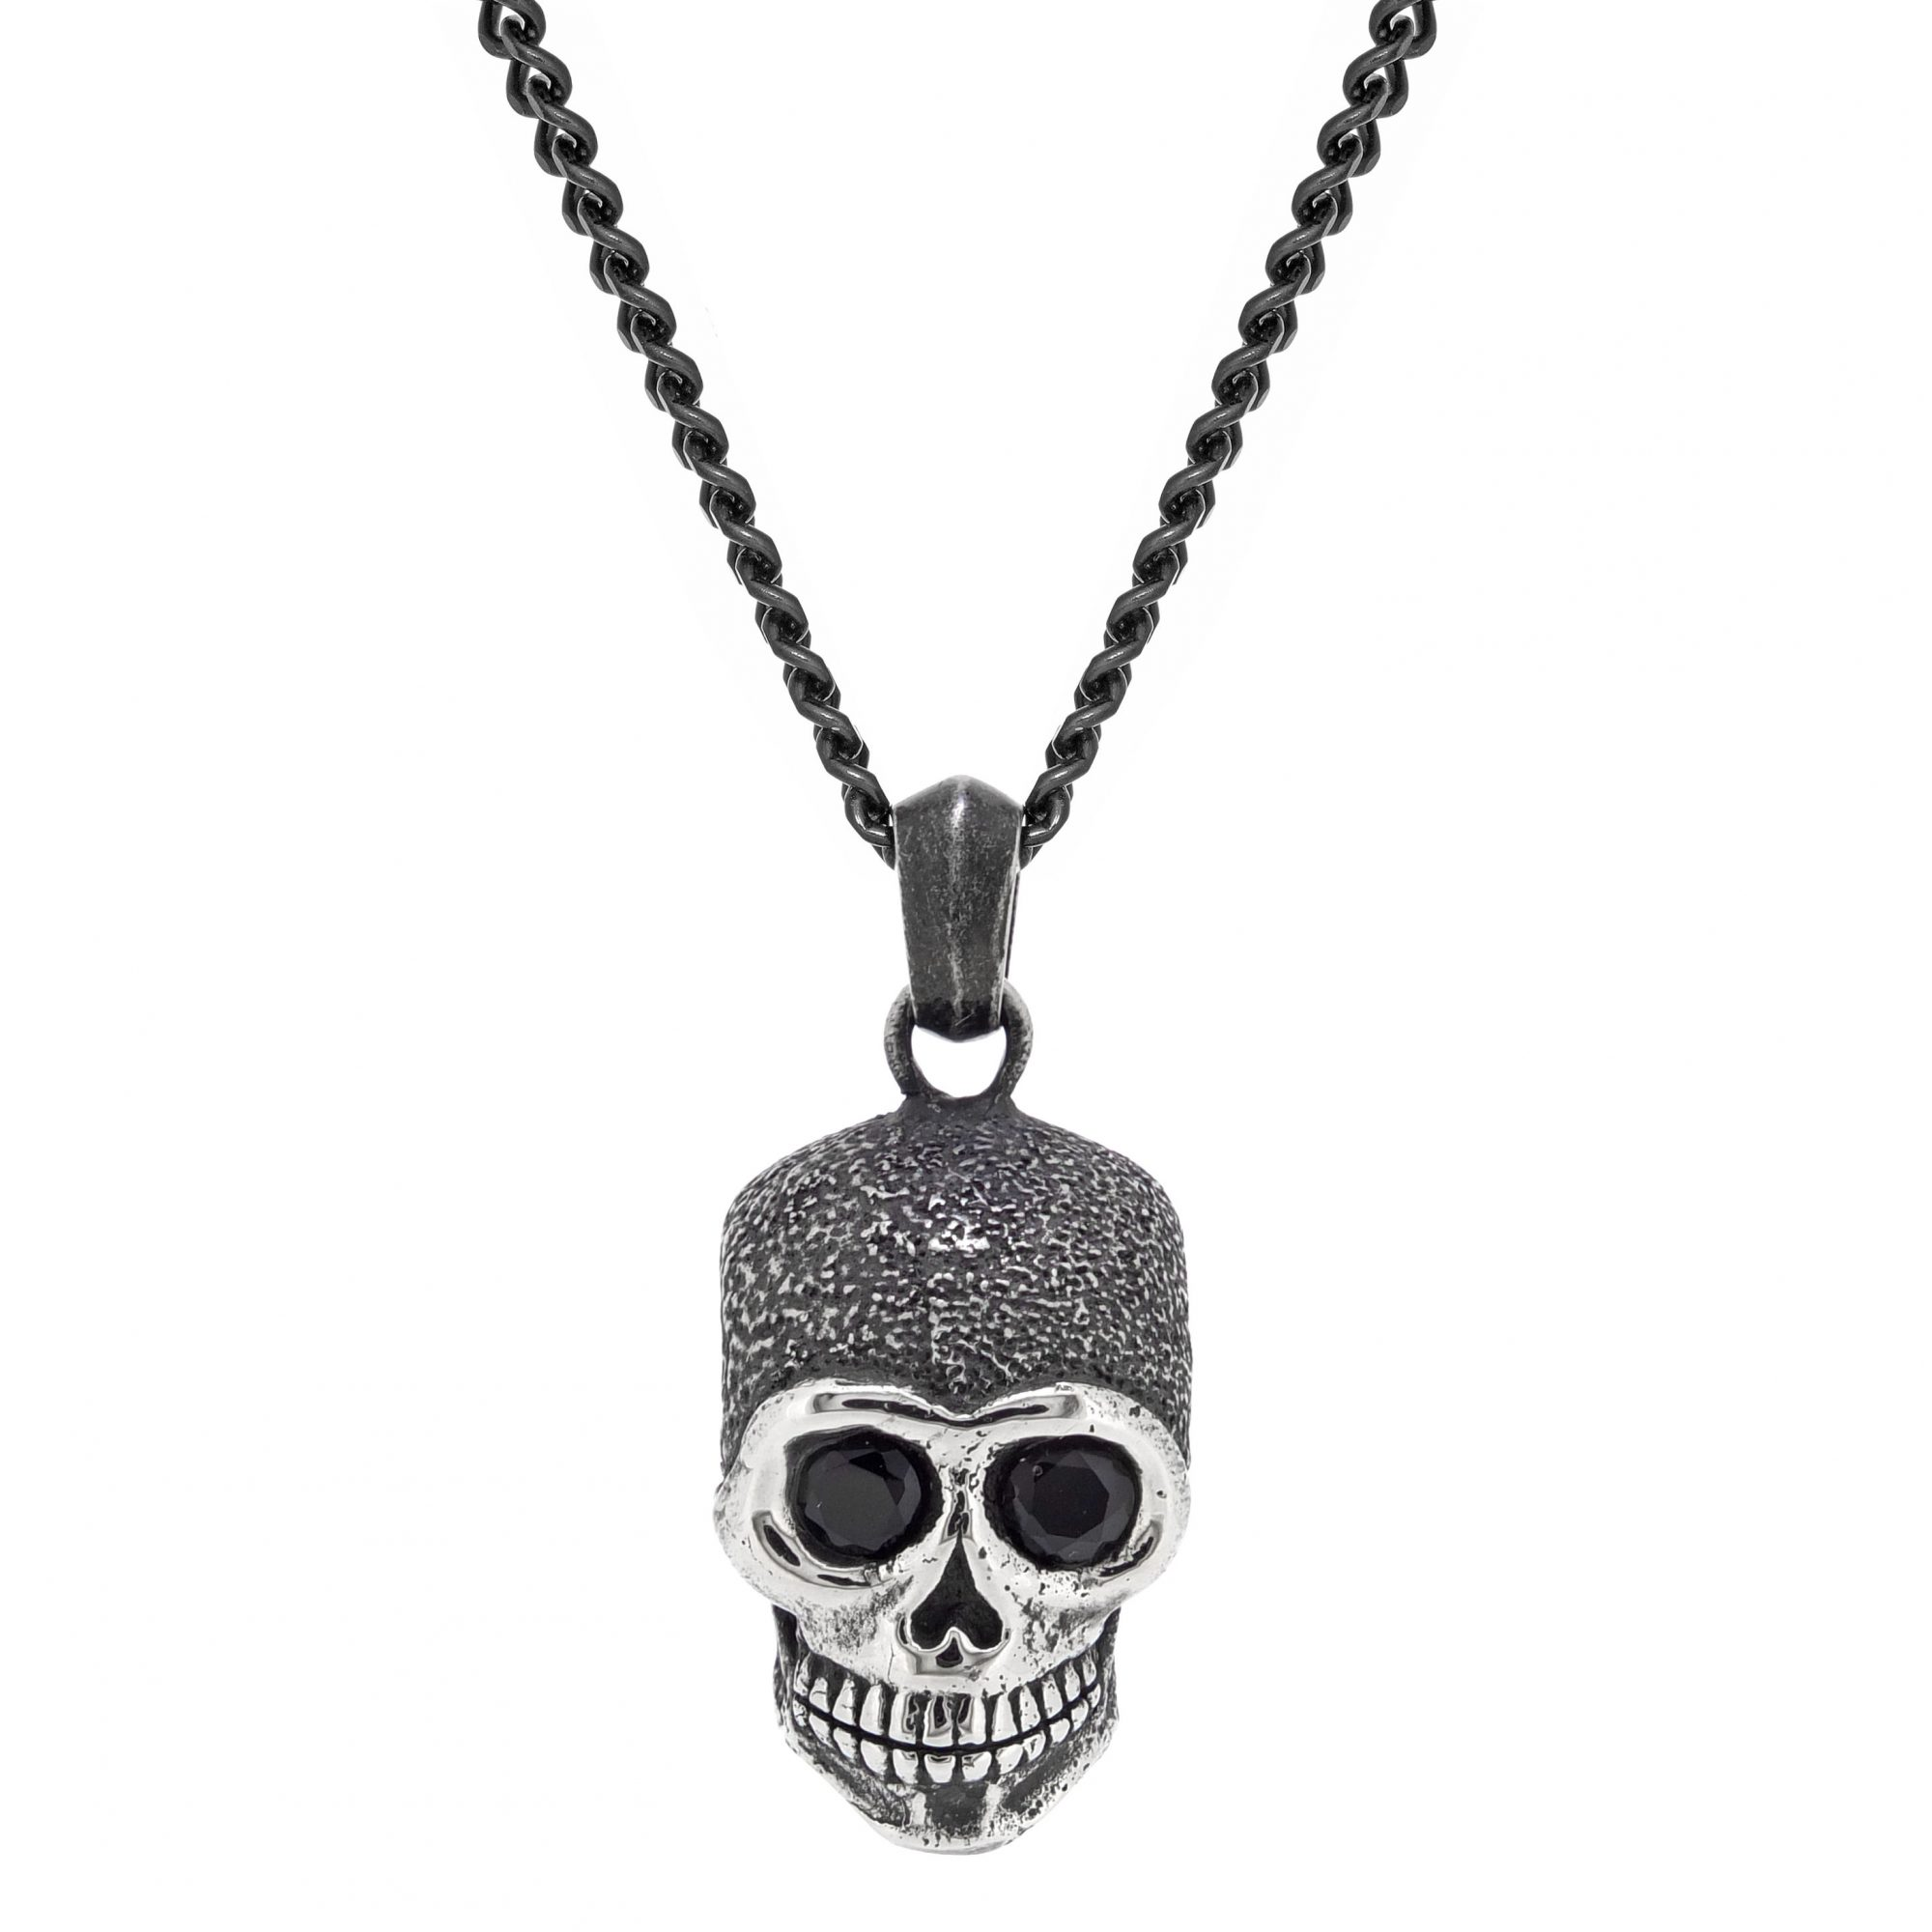 0.26 Round Black Cubic Zirconia Black Ion Plated Stainless Steel Skull Pendant Pendant - 24 Inch Box Chain